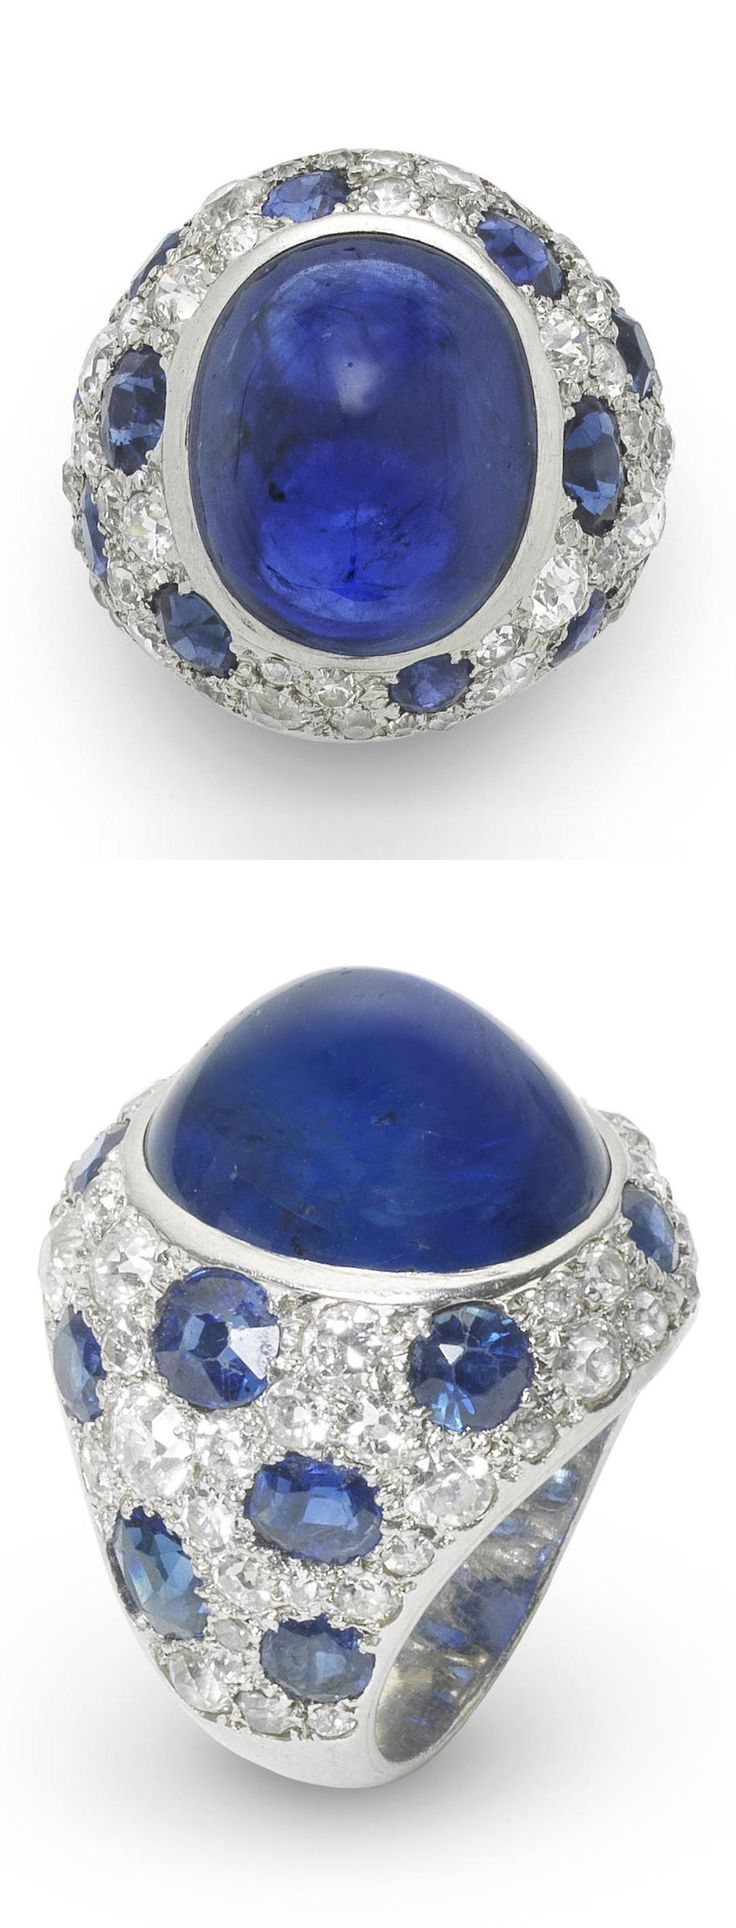 An Art Deco sapphire and diamond bombé ring, circa 1930. The large central cabochon sapphire within a mount pavé-set with old brilliant, brilliant and single-cut diamonds and circular-cut sapphire 'spots', mounted in platinum, diamonds approximately 2.15 carats total, cabochon sapphire approximately 17.00 carats. #ArtDeco #ring